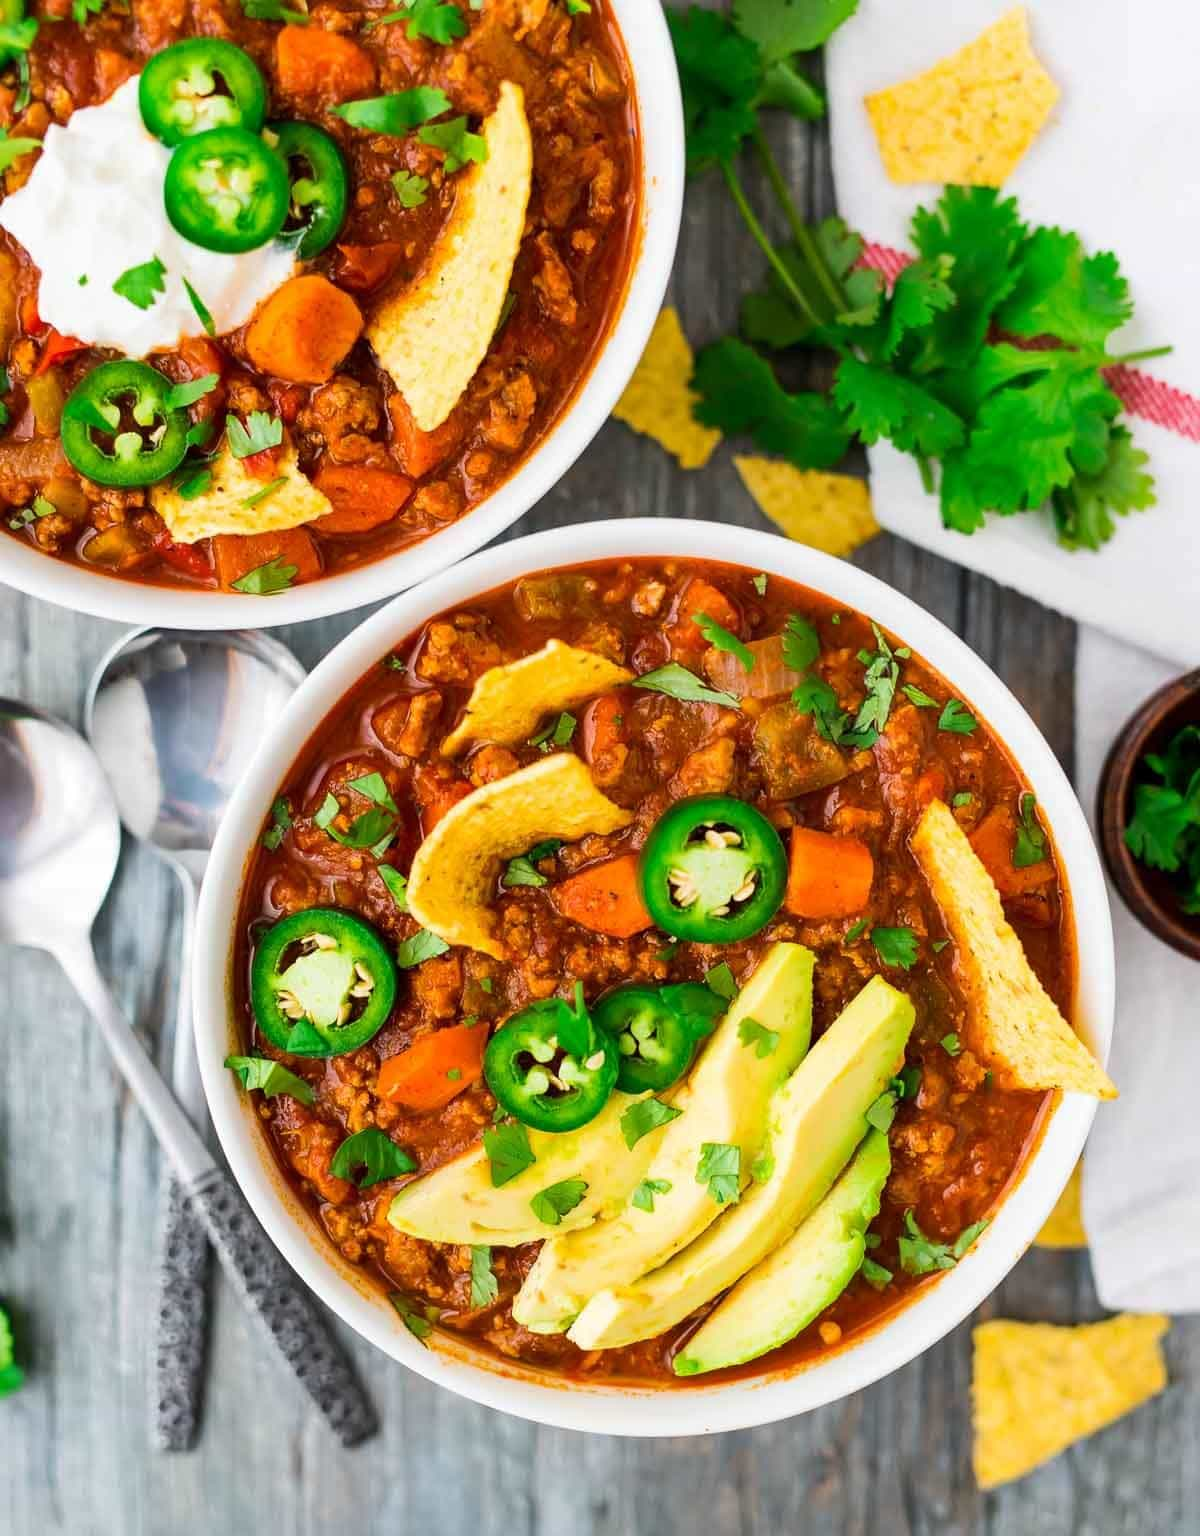 Award-winning Healthy Turkey Chili with Sweet Potatoes, lean turkey, and avocado. Perfectly spiced, easy, and filling! Just 227 calories per serving! Recipe at wellplated.com | @wellplated